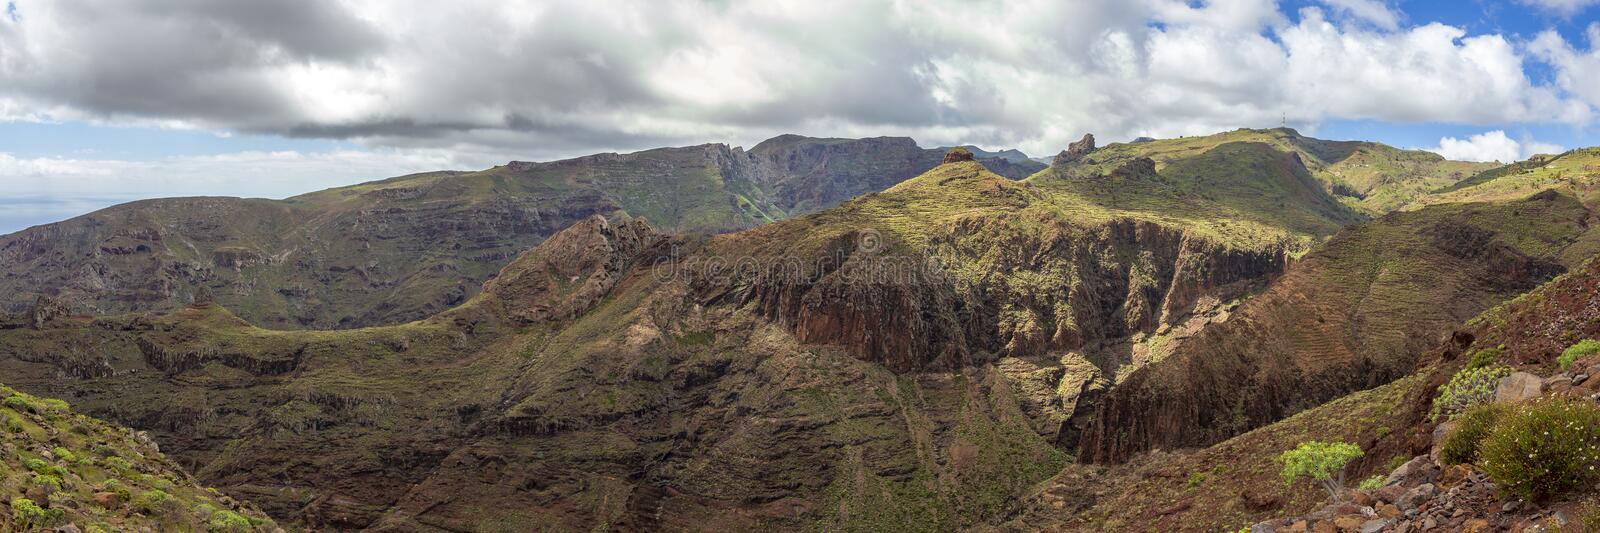 Panoramic landscape view at la Gomera, Canary Islands. Panoramic landscape view at la Gomera, Canary Islands, Spain stock photography